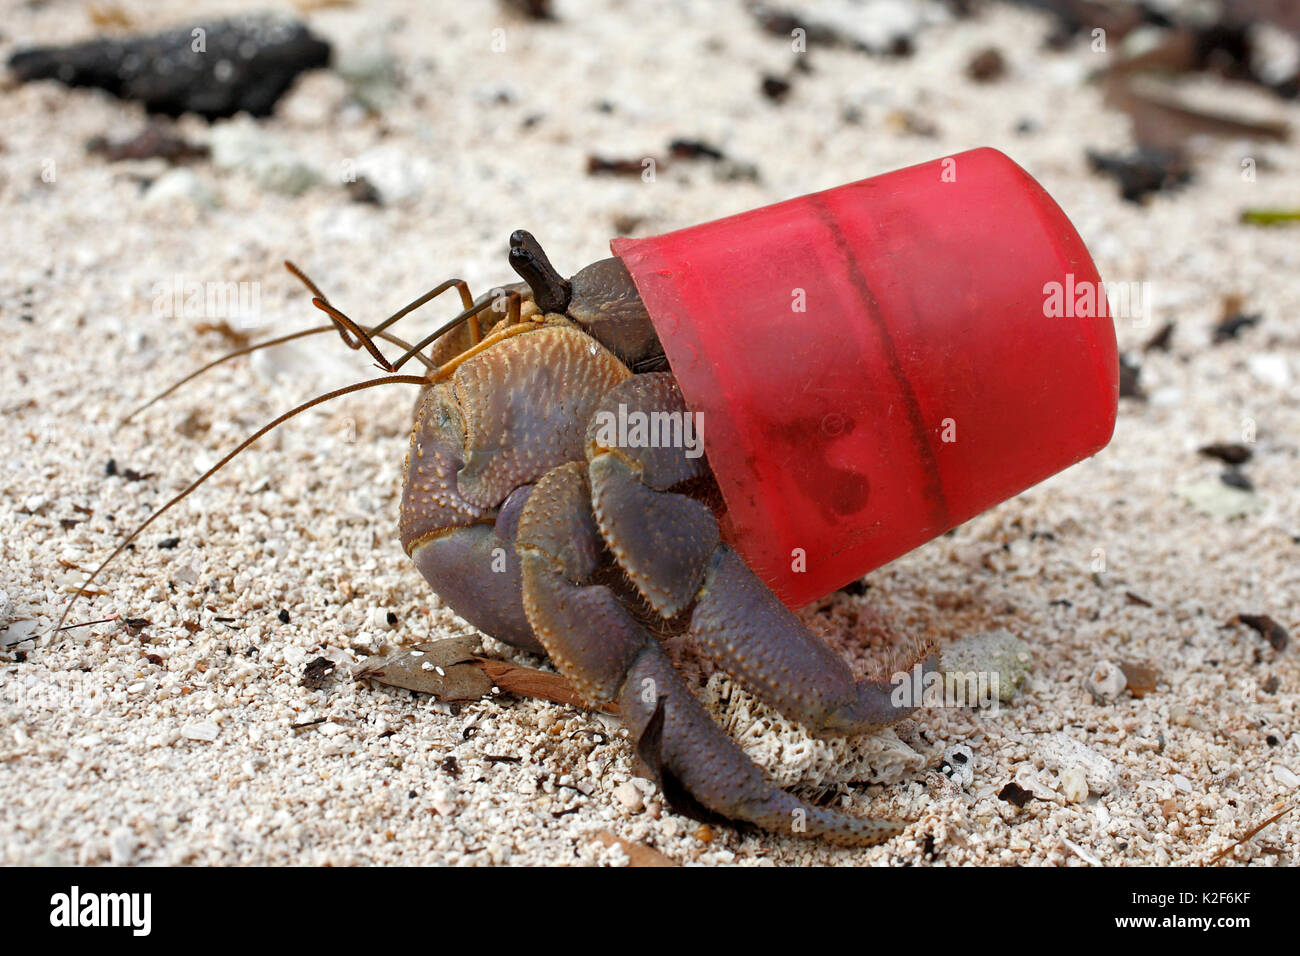 Terrestrial Hermit crab, Coenobita brevimanus, using a red bottle cap as a protective shell instead of the usual mollusk shell. - Stock Image